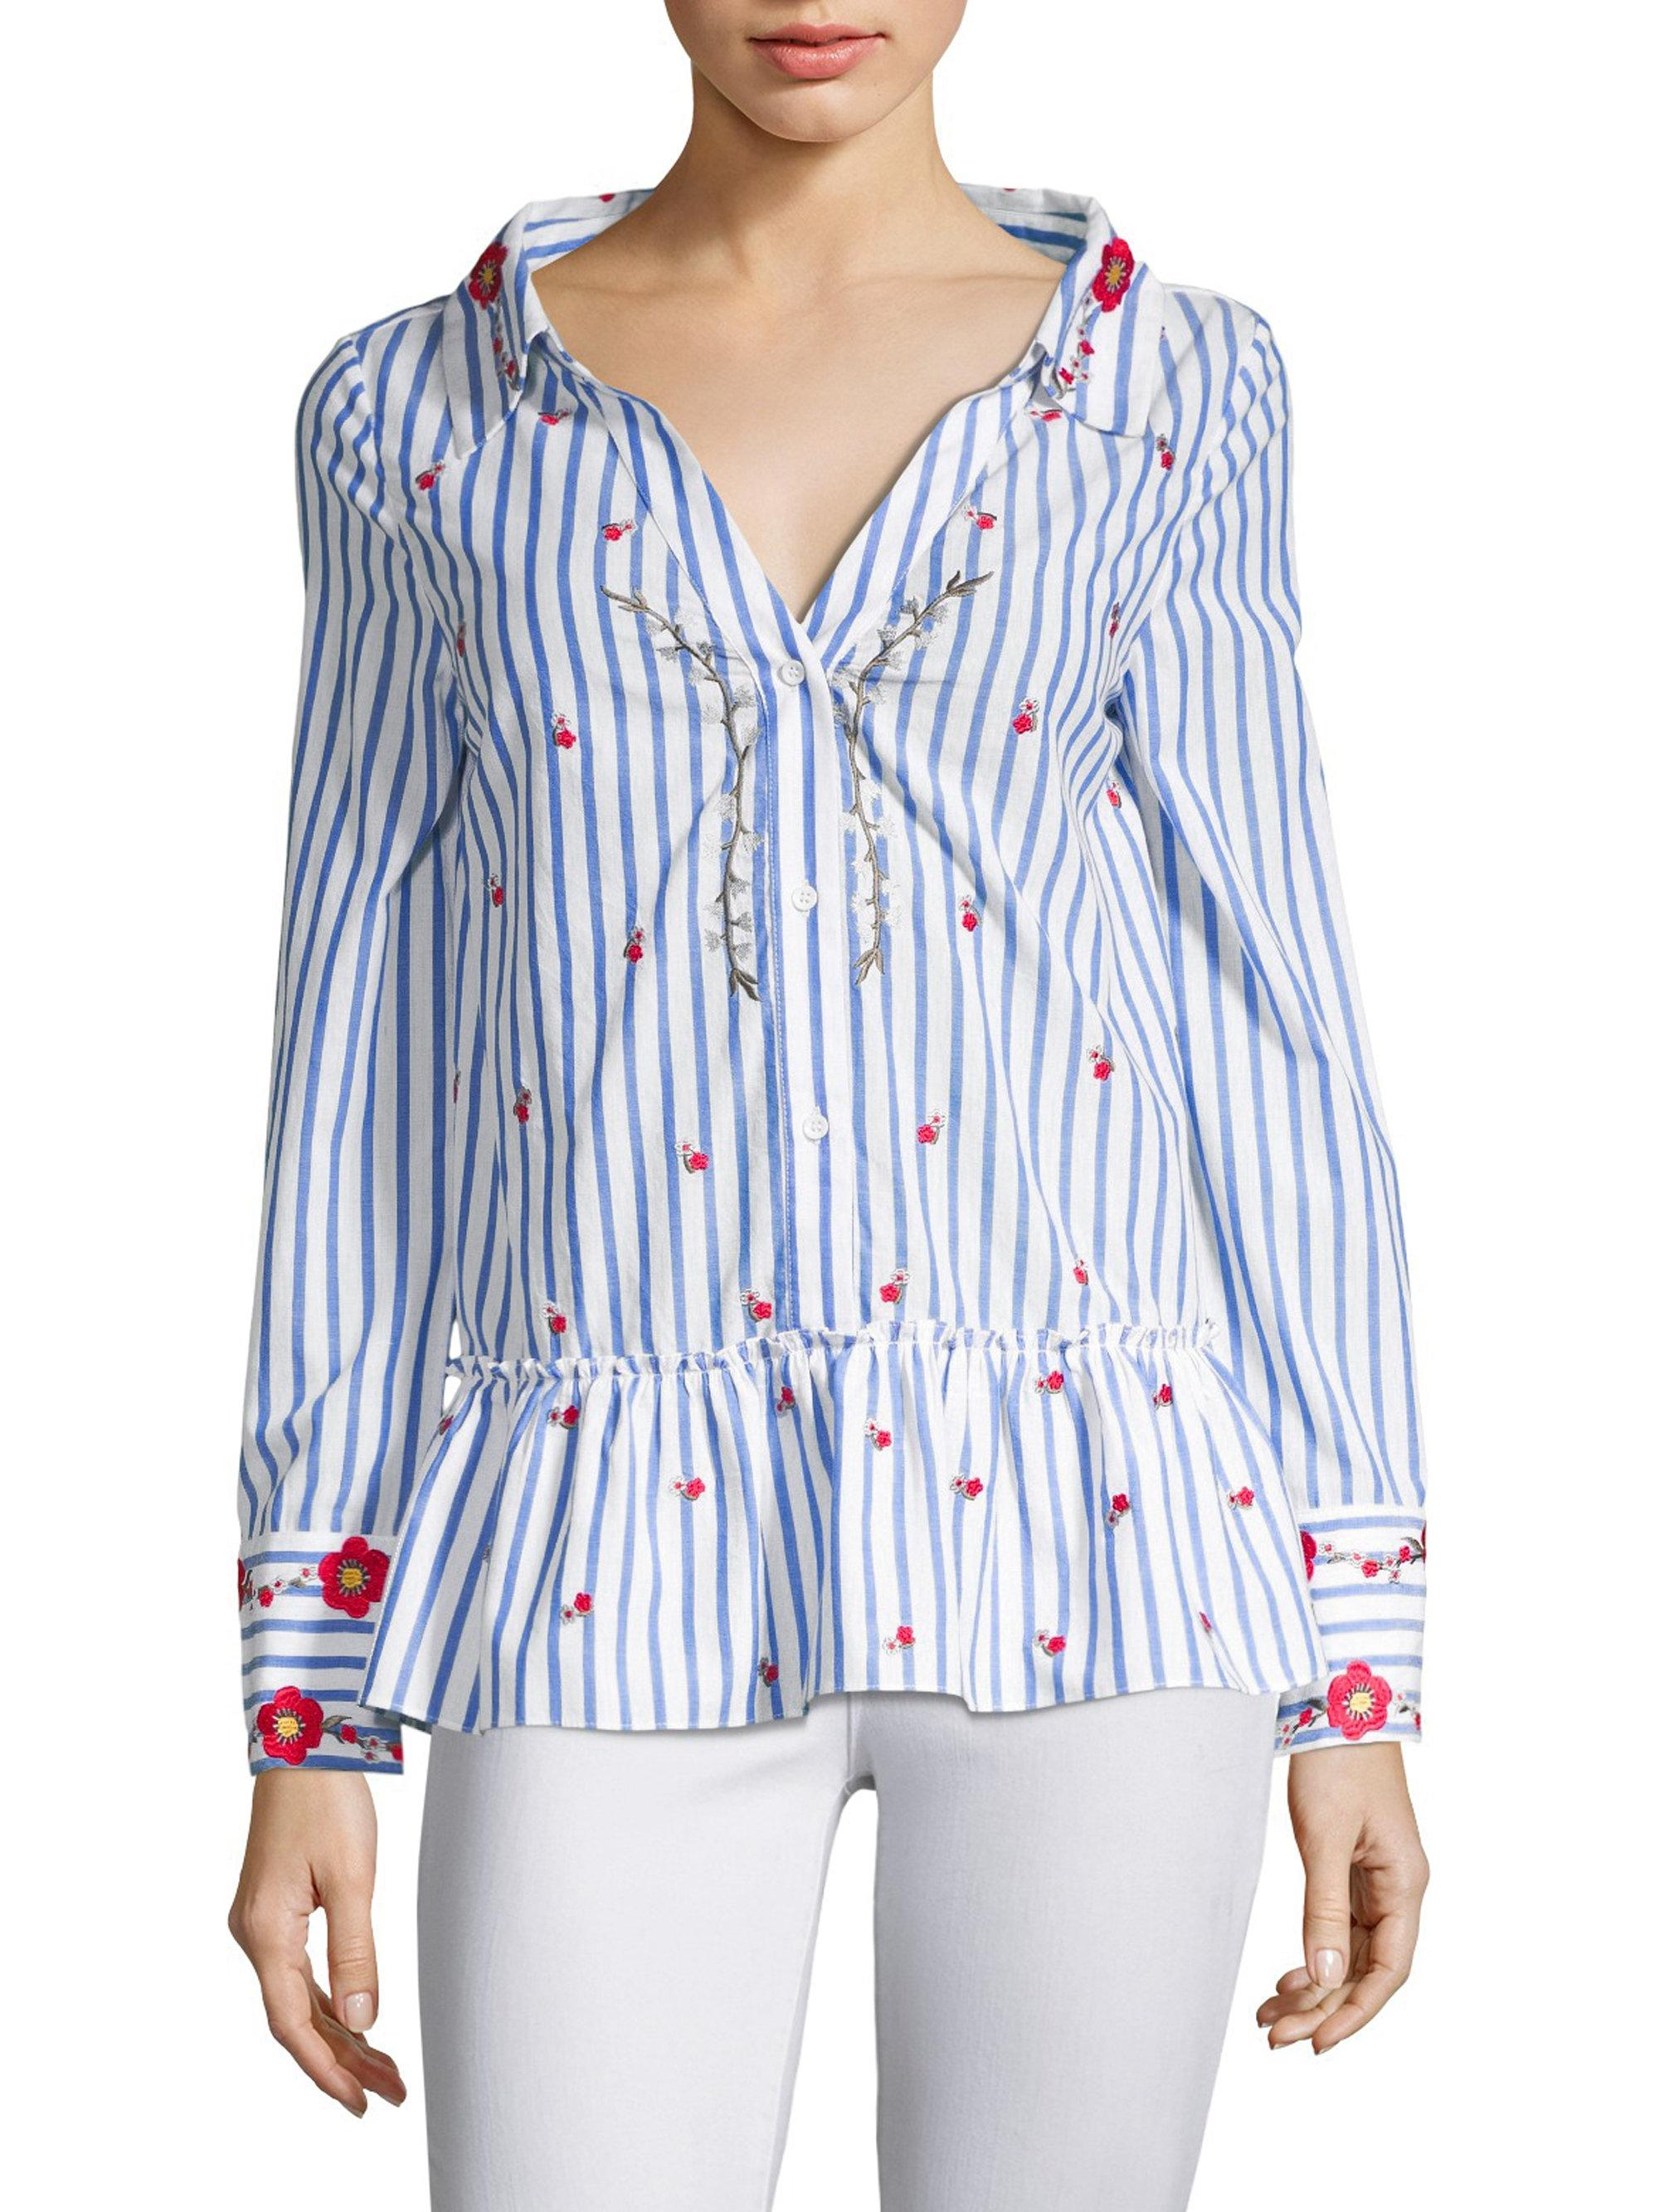 92557342d832a0 Alice + Olivia Ashlyn Button-down Embroidery Shirt in Blue - Lyst